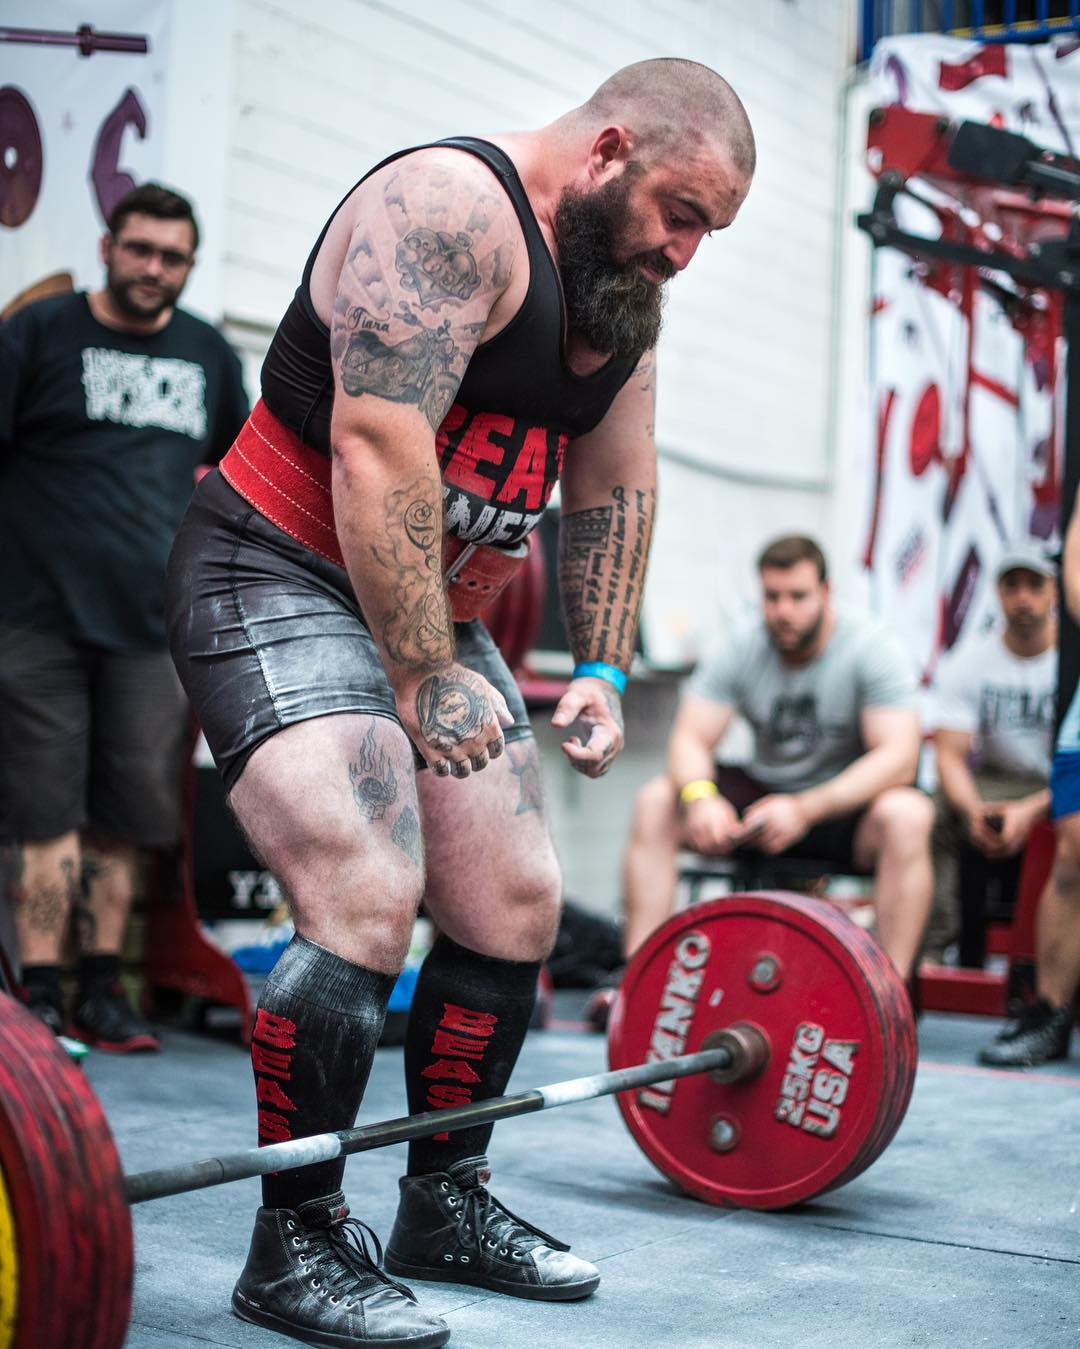 5 Amazing Benefits of Powerlifting